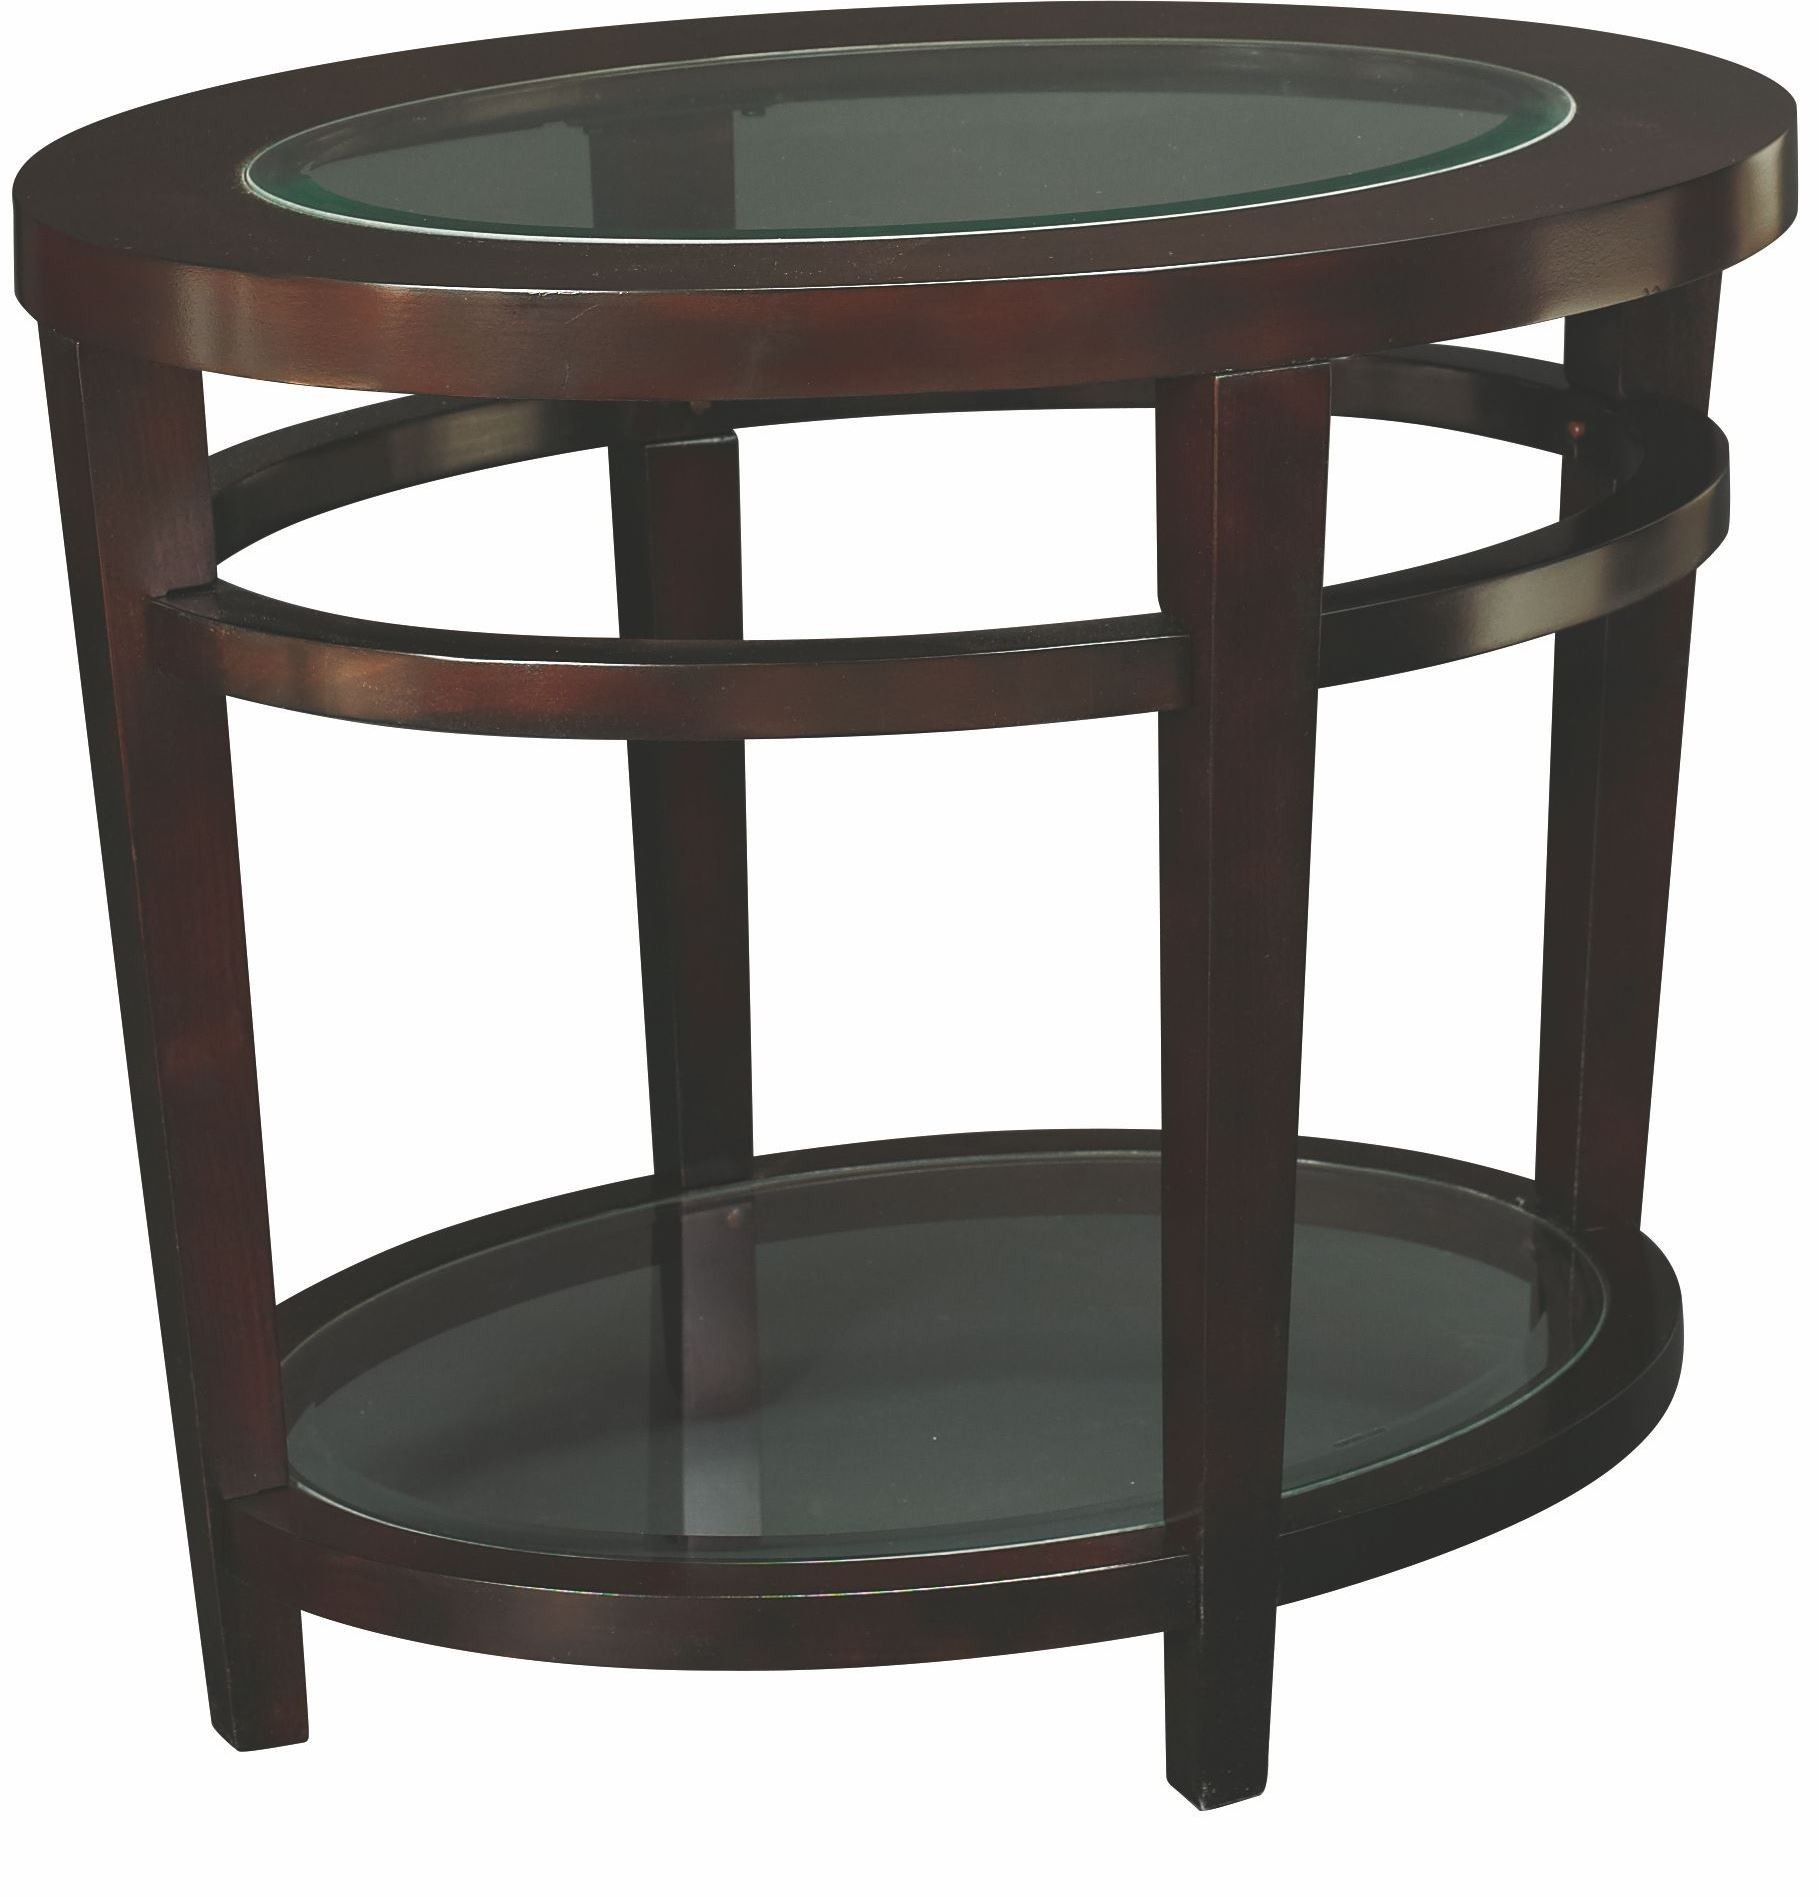 Urbana oval occasional table set from hammary t20810 for Table urbana but